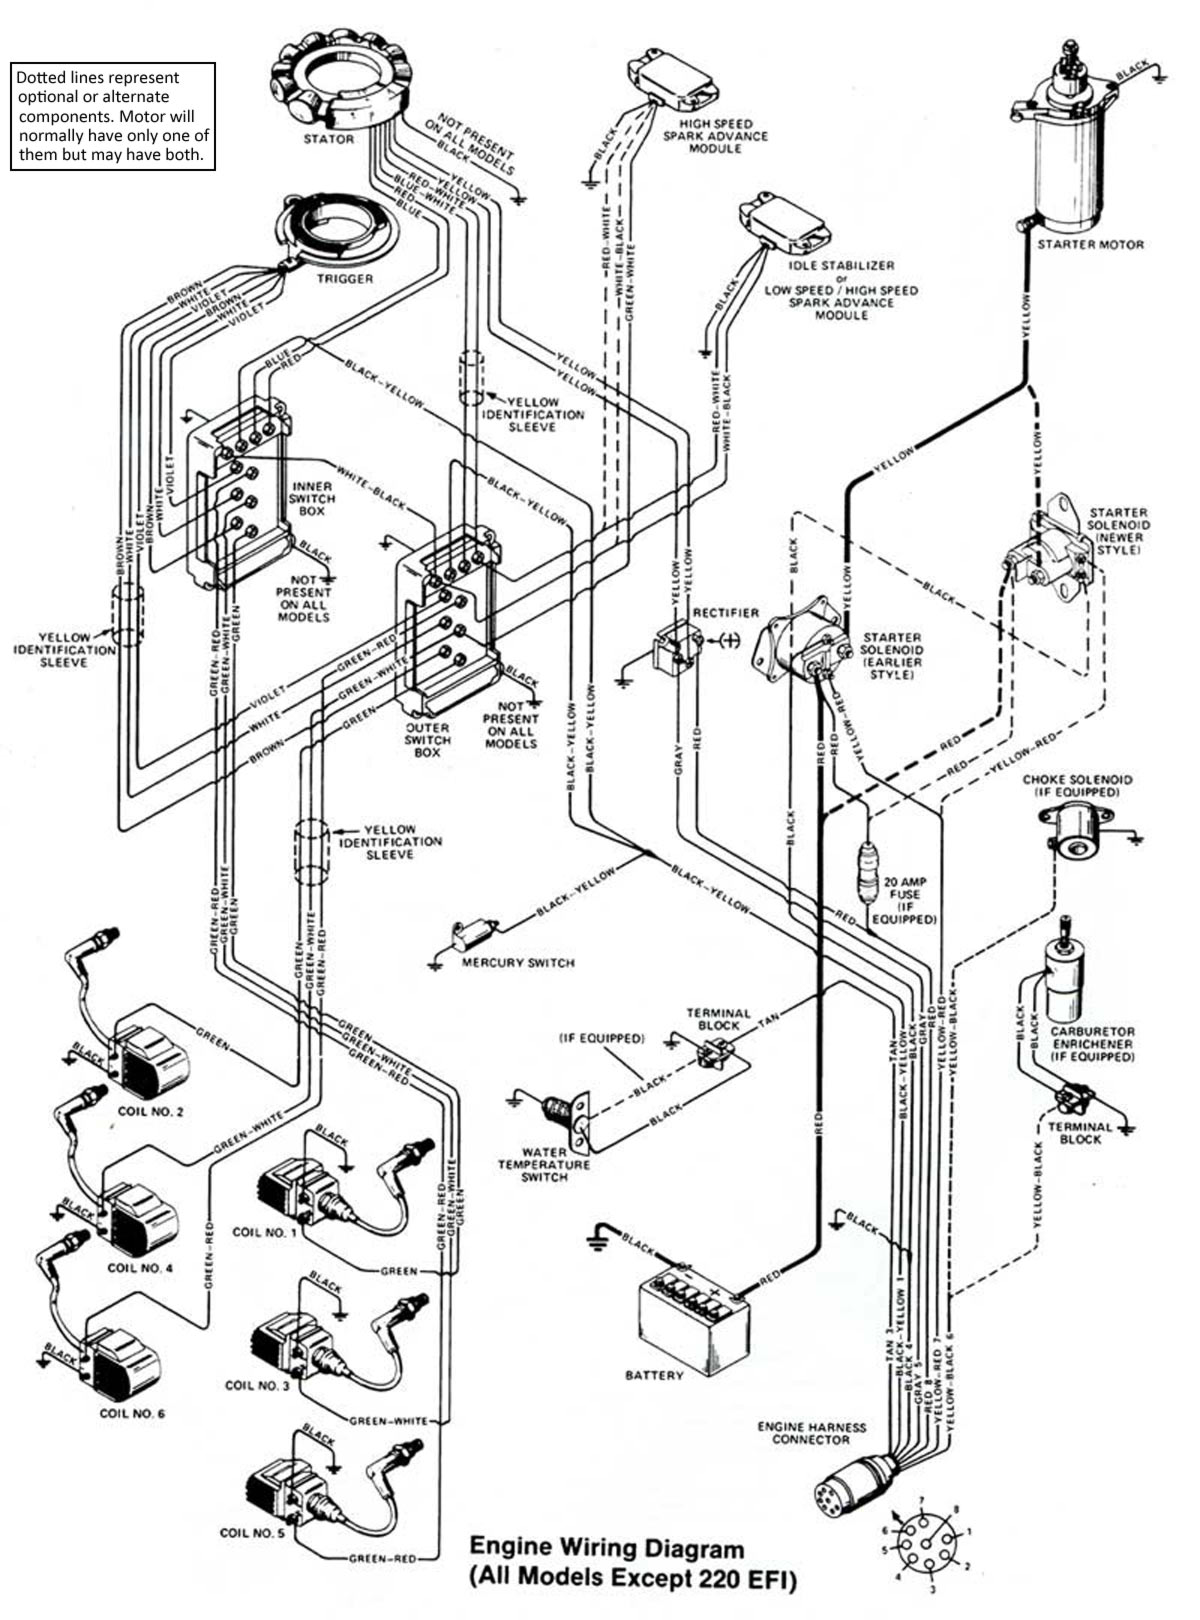 Mercury V6 Outboard Wiring Diagram : Hp force outboard wiring diagram get free image